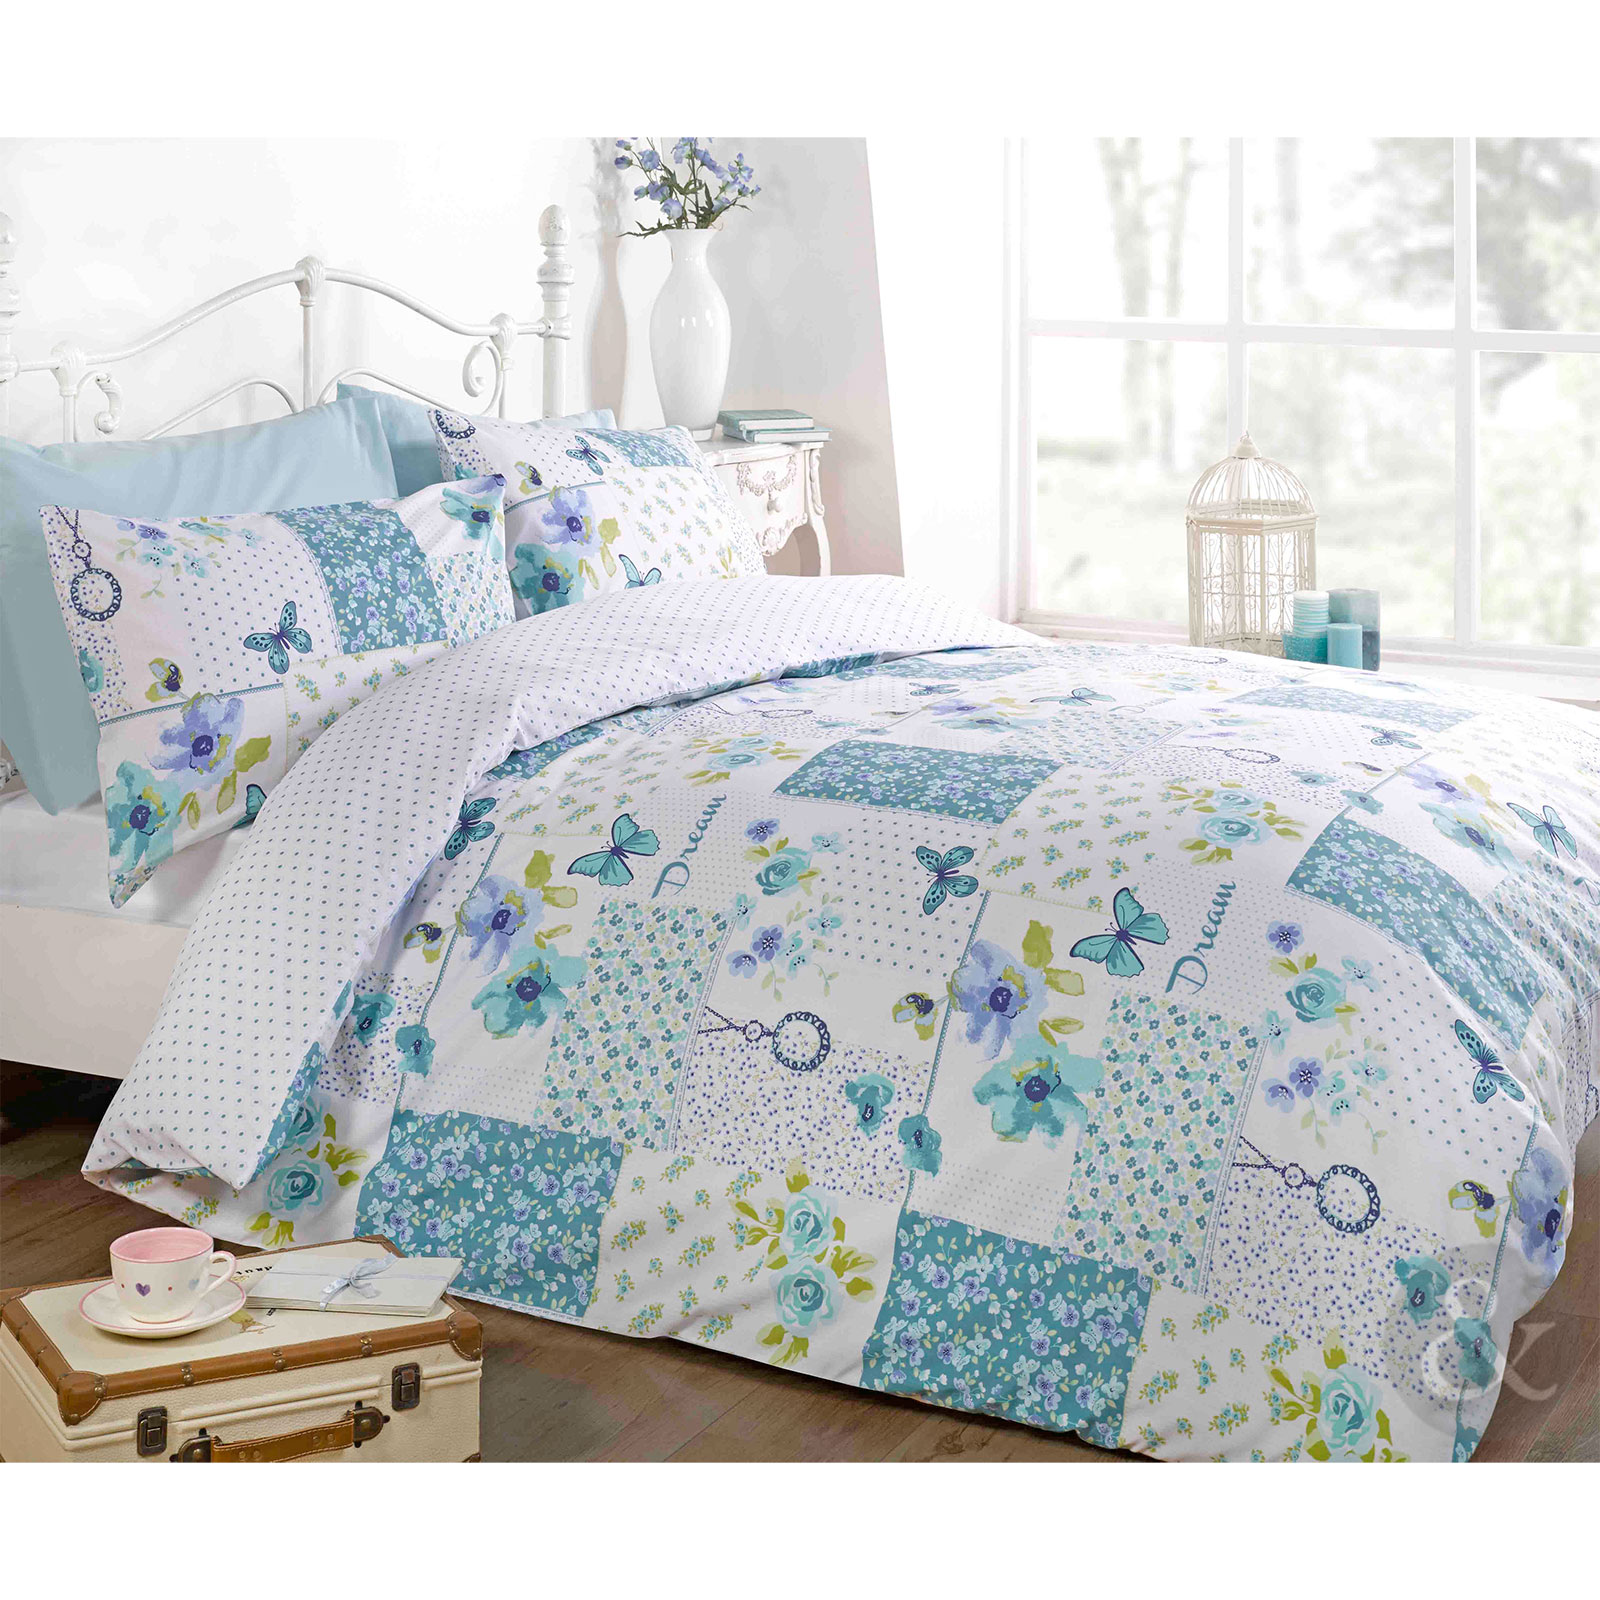 Floral Patchwork Shabby Chic Duvet Cover Butterfly